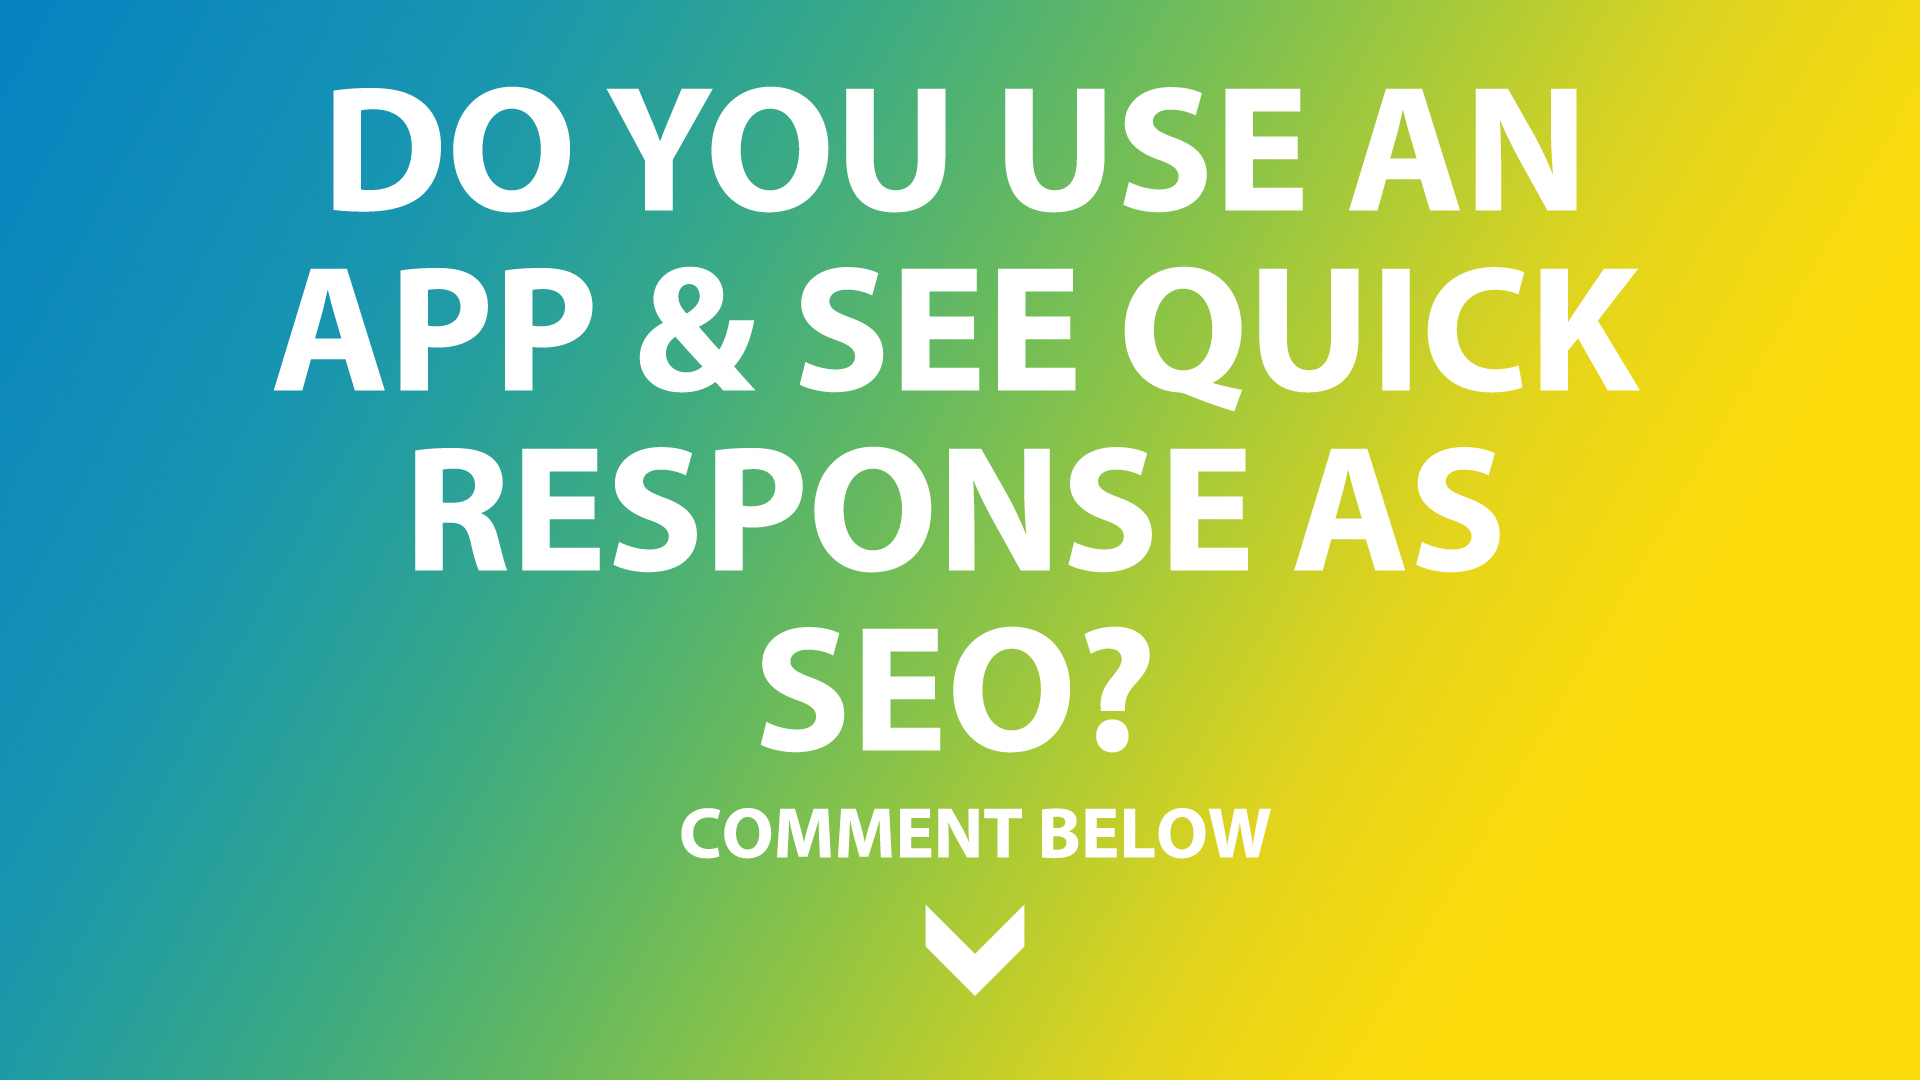 app response is useful for sales